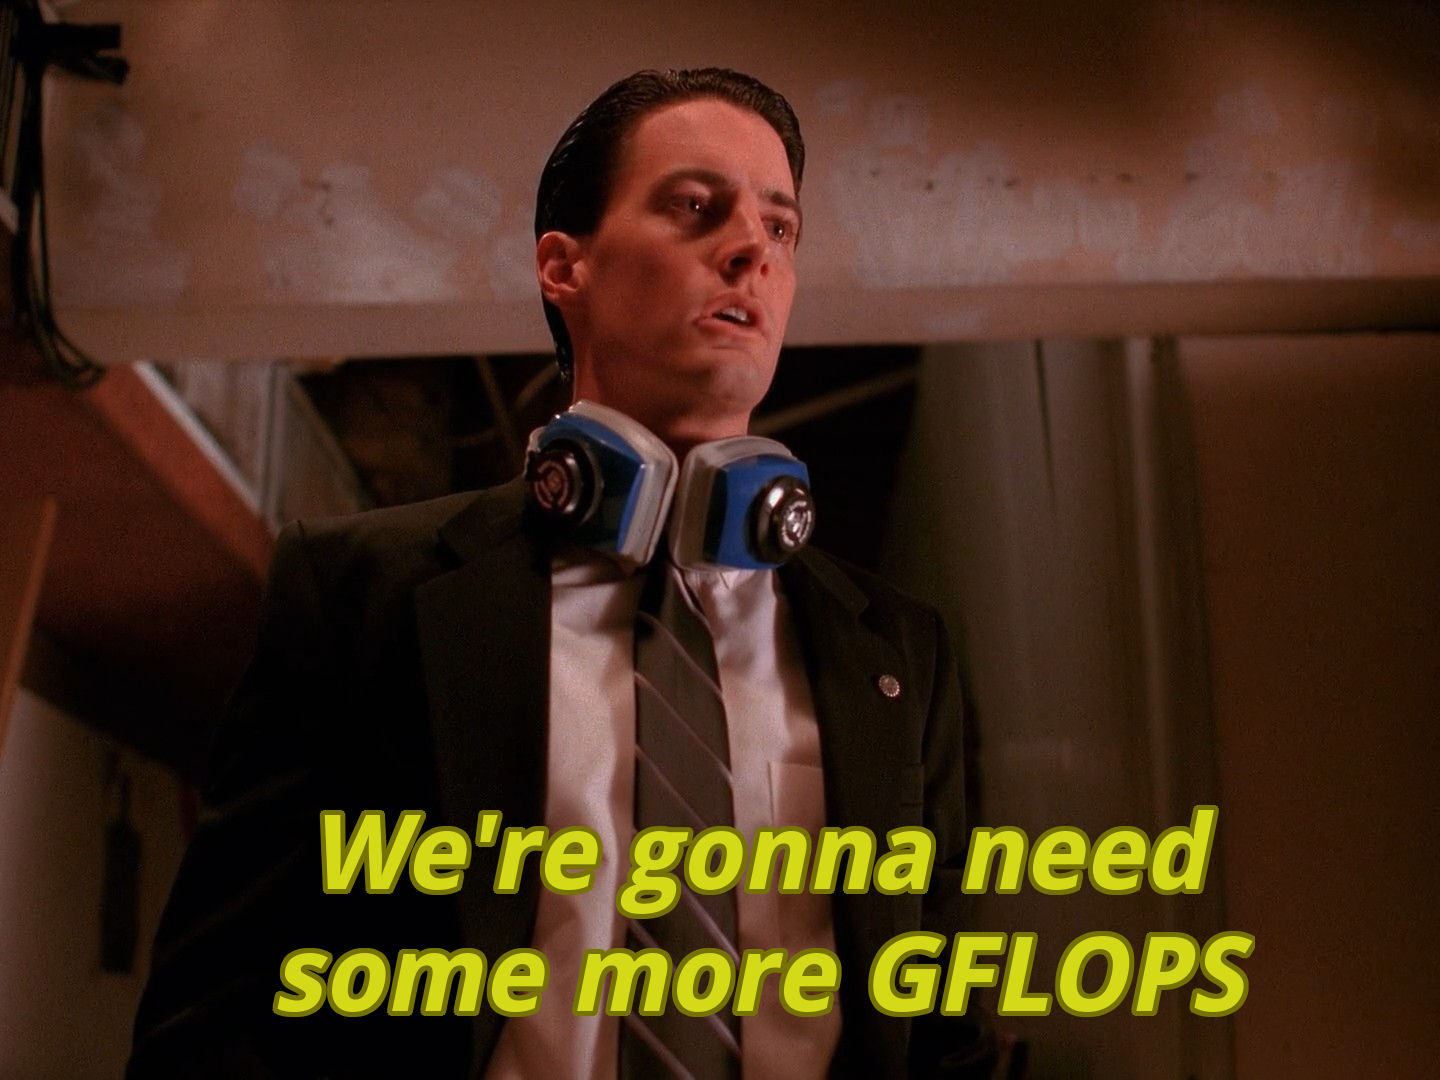 We're gonna need some more GFLOPS